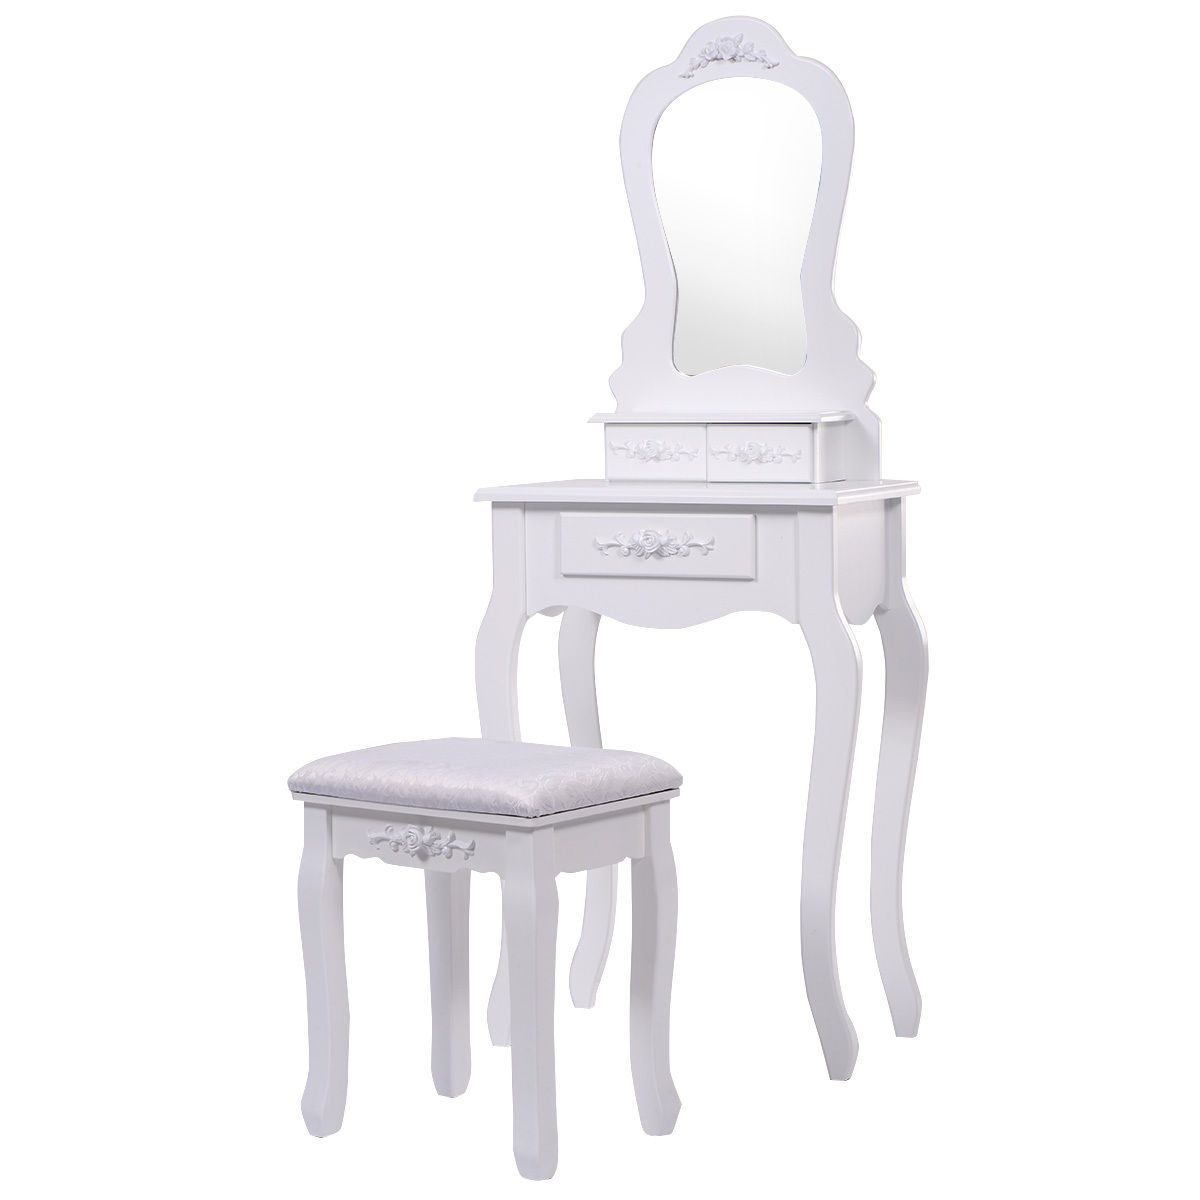 White Vanity Jewelry Makeup Dressing Table Set W Stool Drawer Mirror Wood Desk